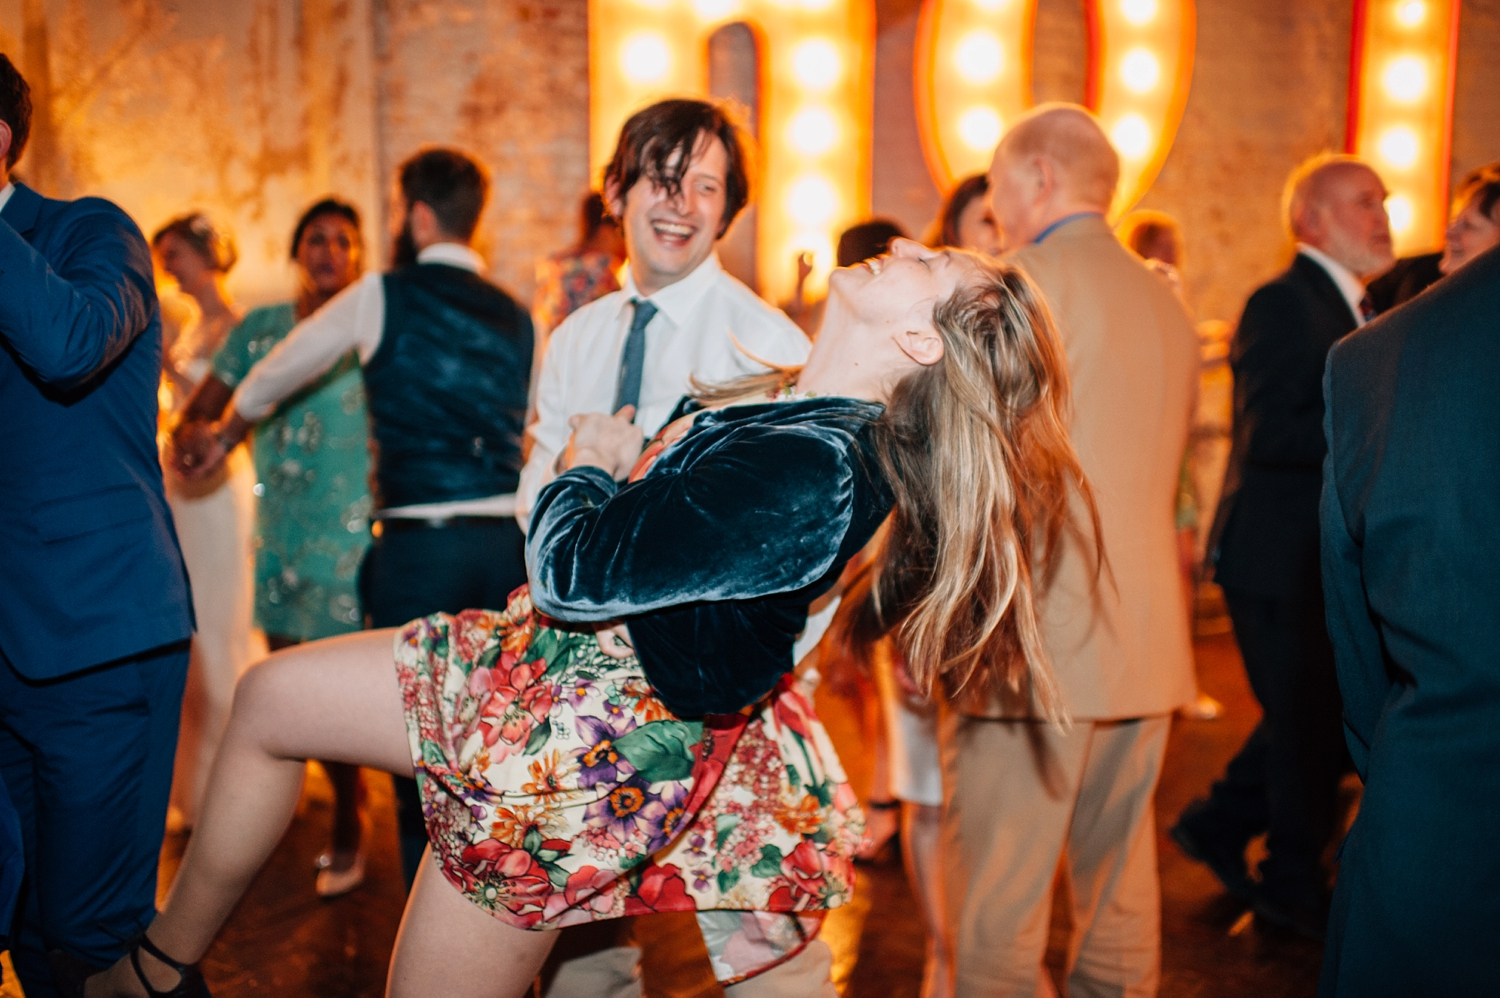 0219-lisa-devine-alternative-wedding-photography-london-hackney-dalston-london-photography-townhall-hotel.JPG